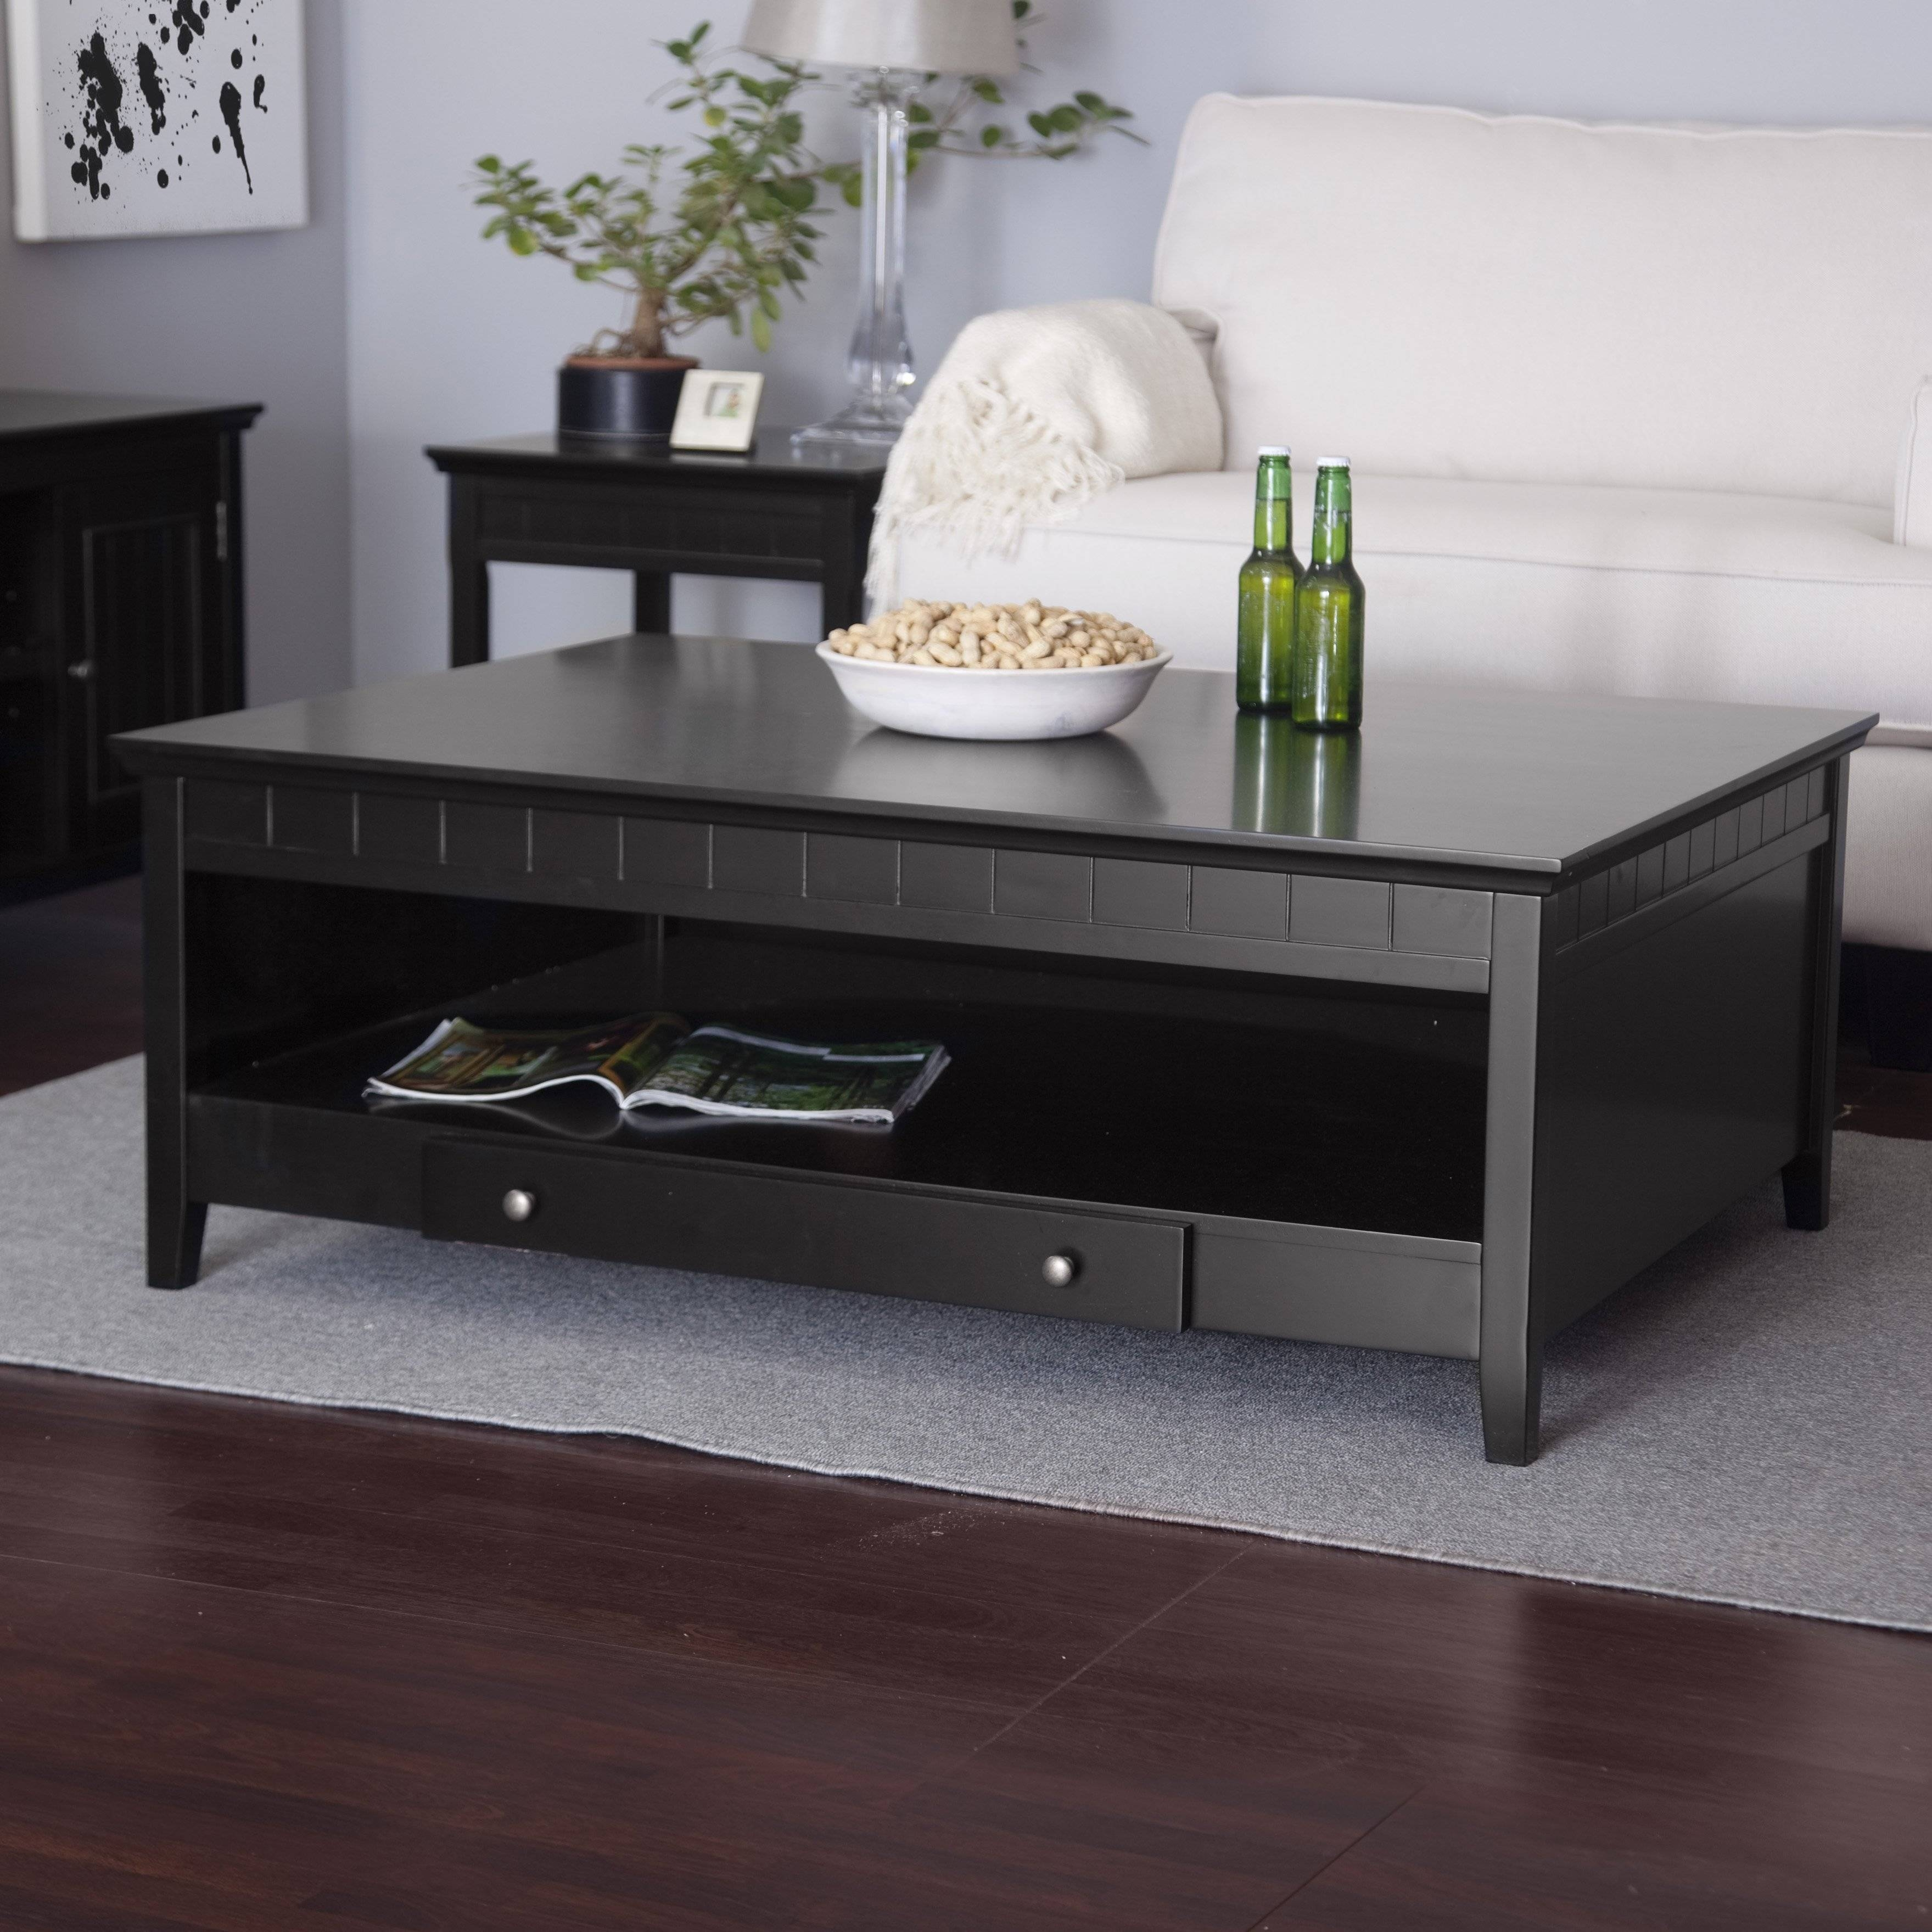 Side Table With Storage. Storage Coffee Table. Corbett Linen pertaining to Small Coffee Tables With Drawer (Image 25 of 30)